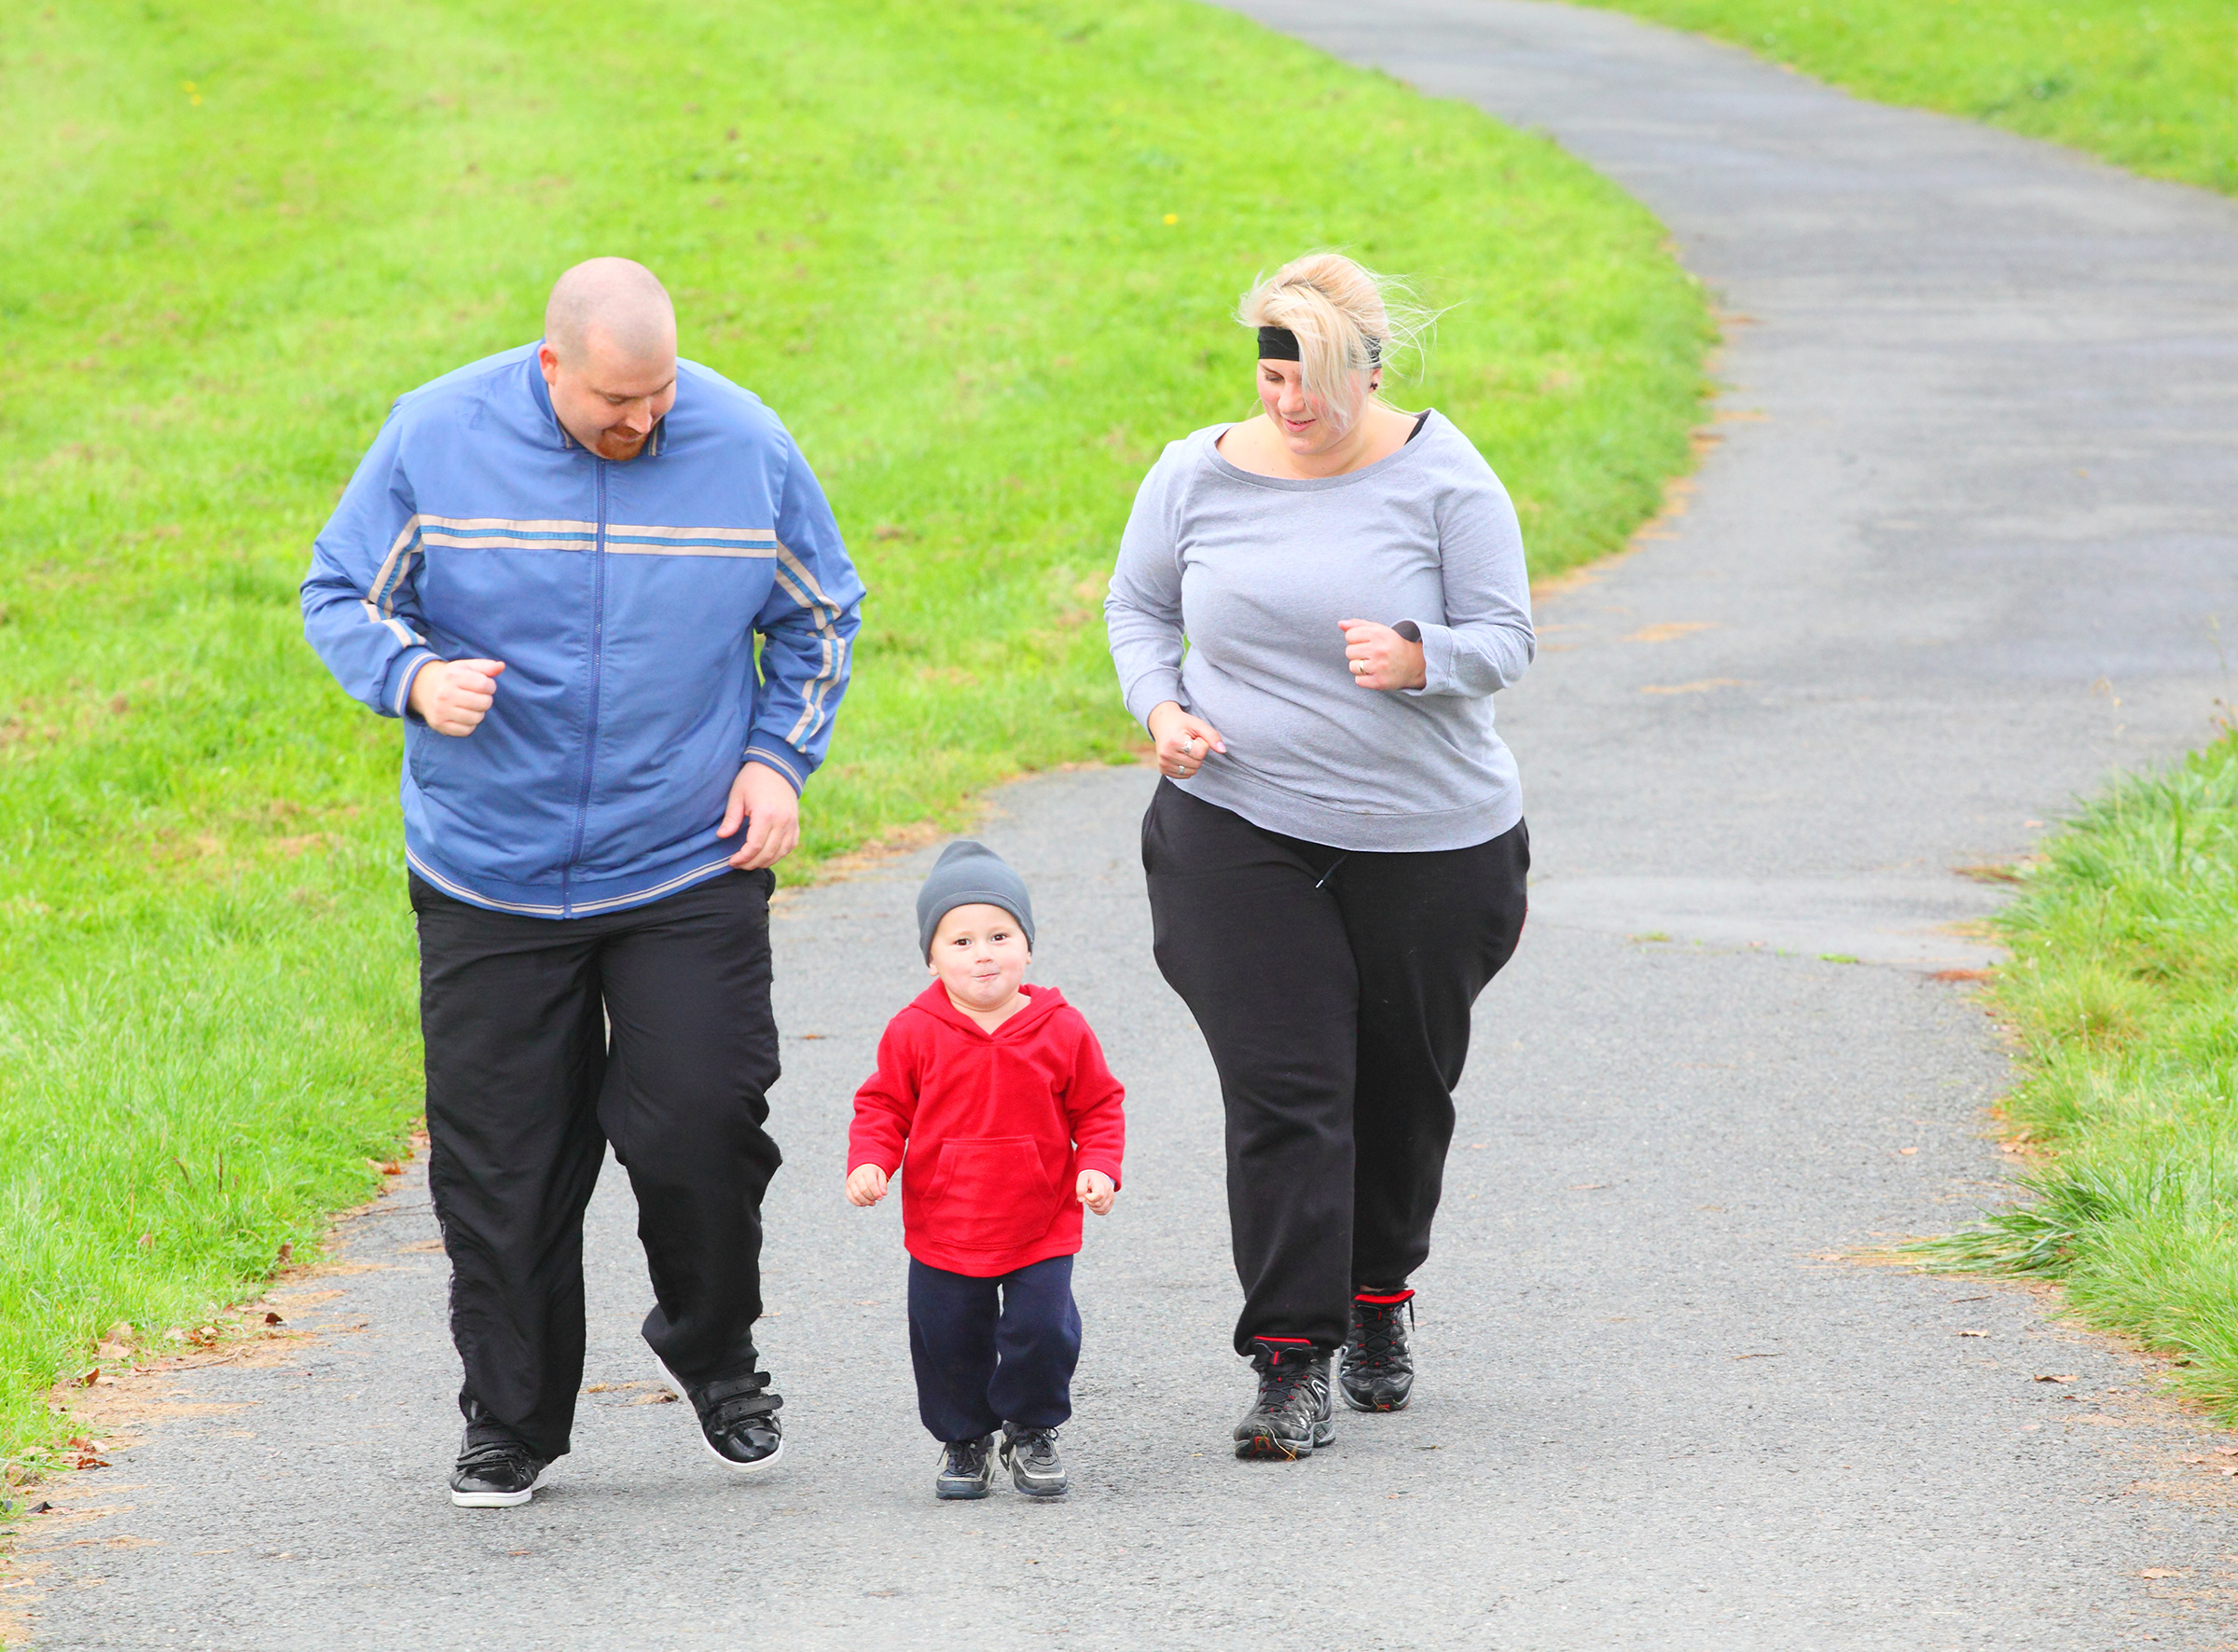 Overweight family running.jpeg